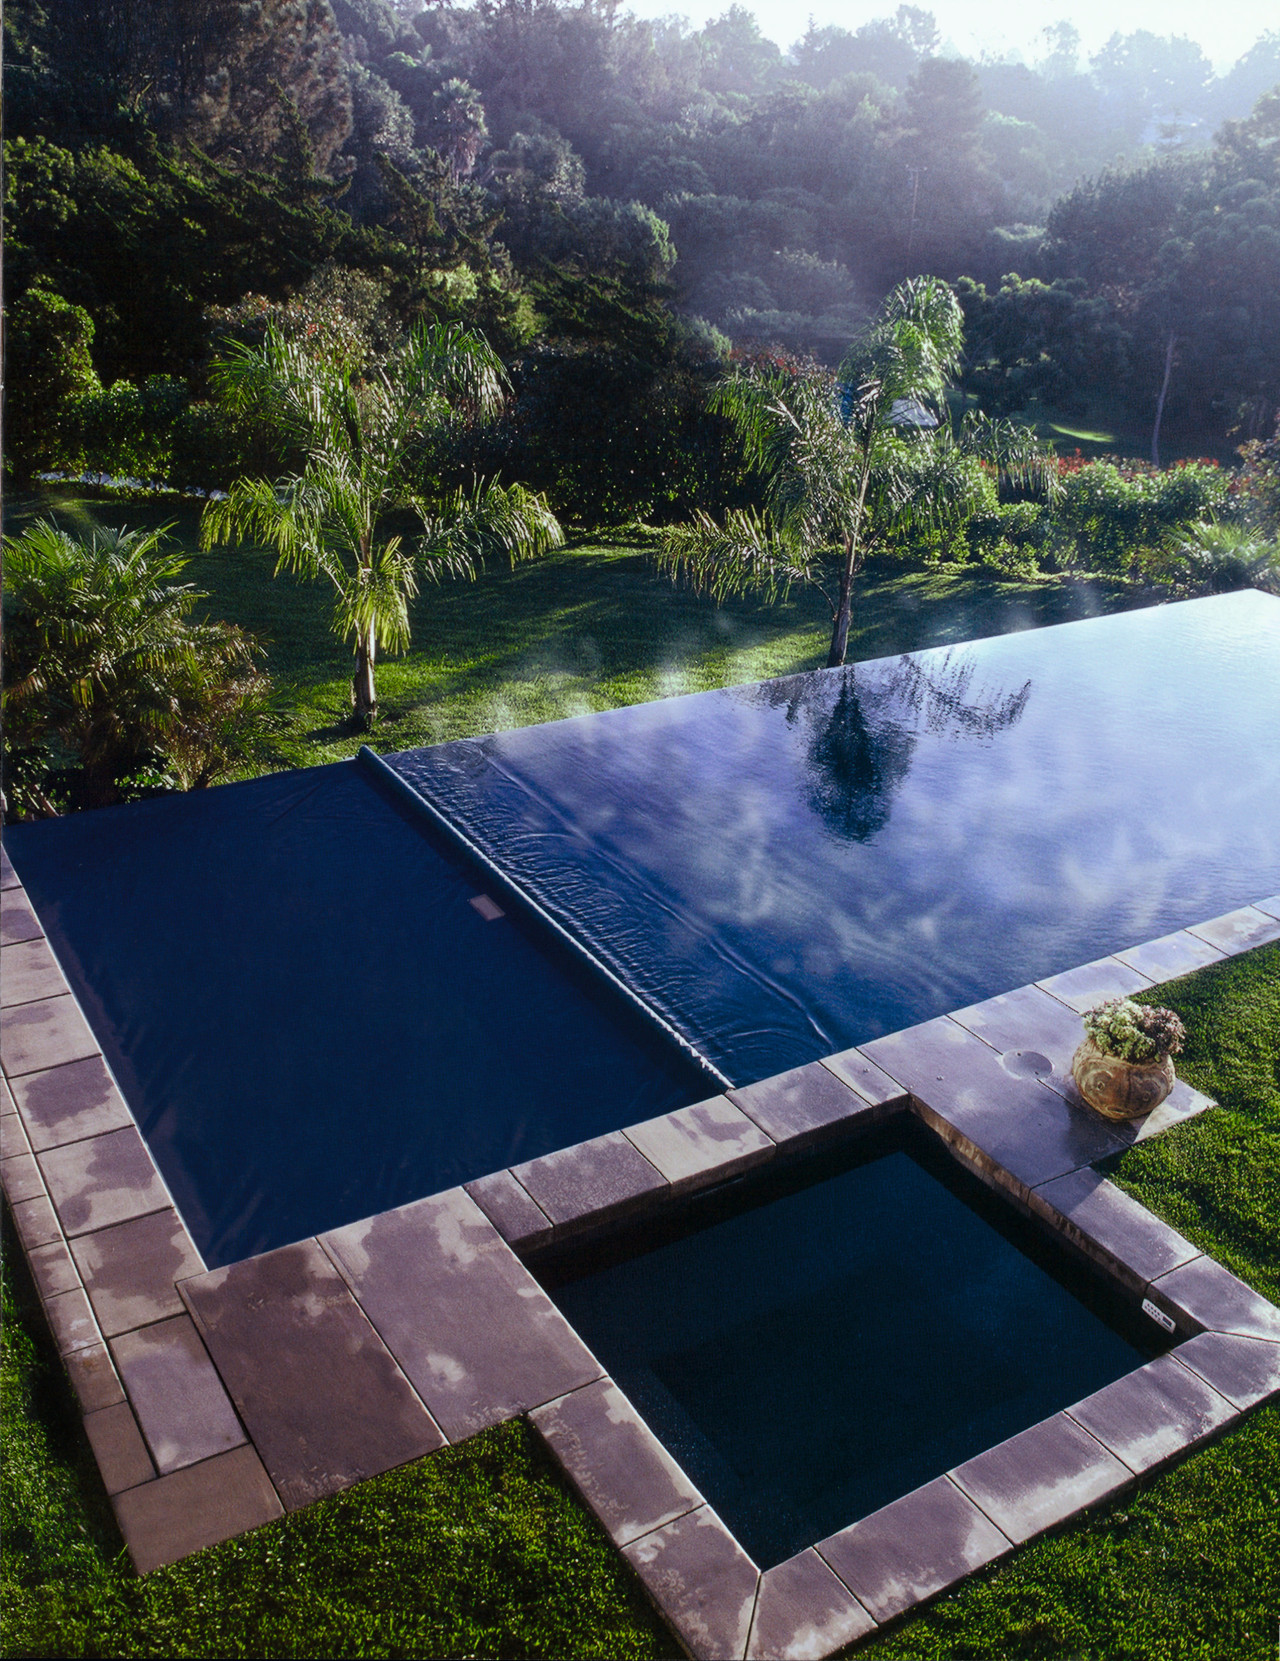 View of swimming pool and automatic pool cover backyard, estate, grass, landscape, leisure, nature, plant, property, real estate, reflection, reservoir, sky, swimming pool, tree, water, water feature, water resources, blue